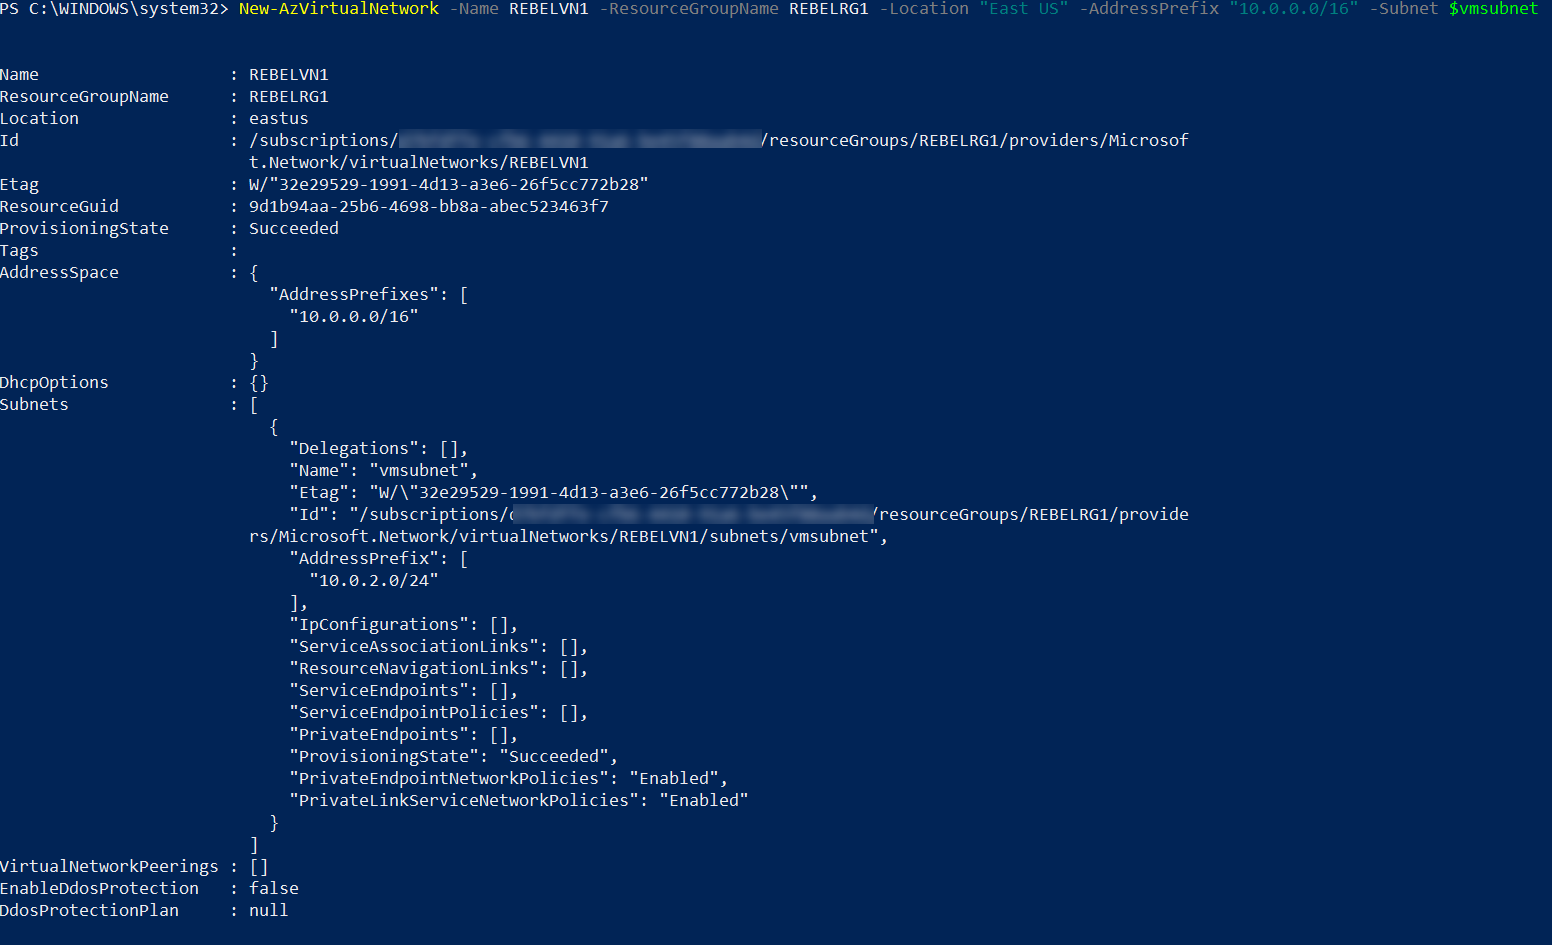 Azure virtual network for source